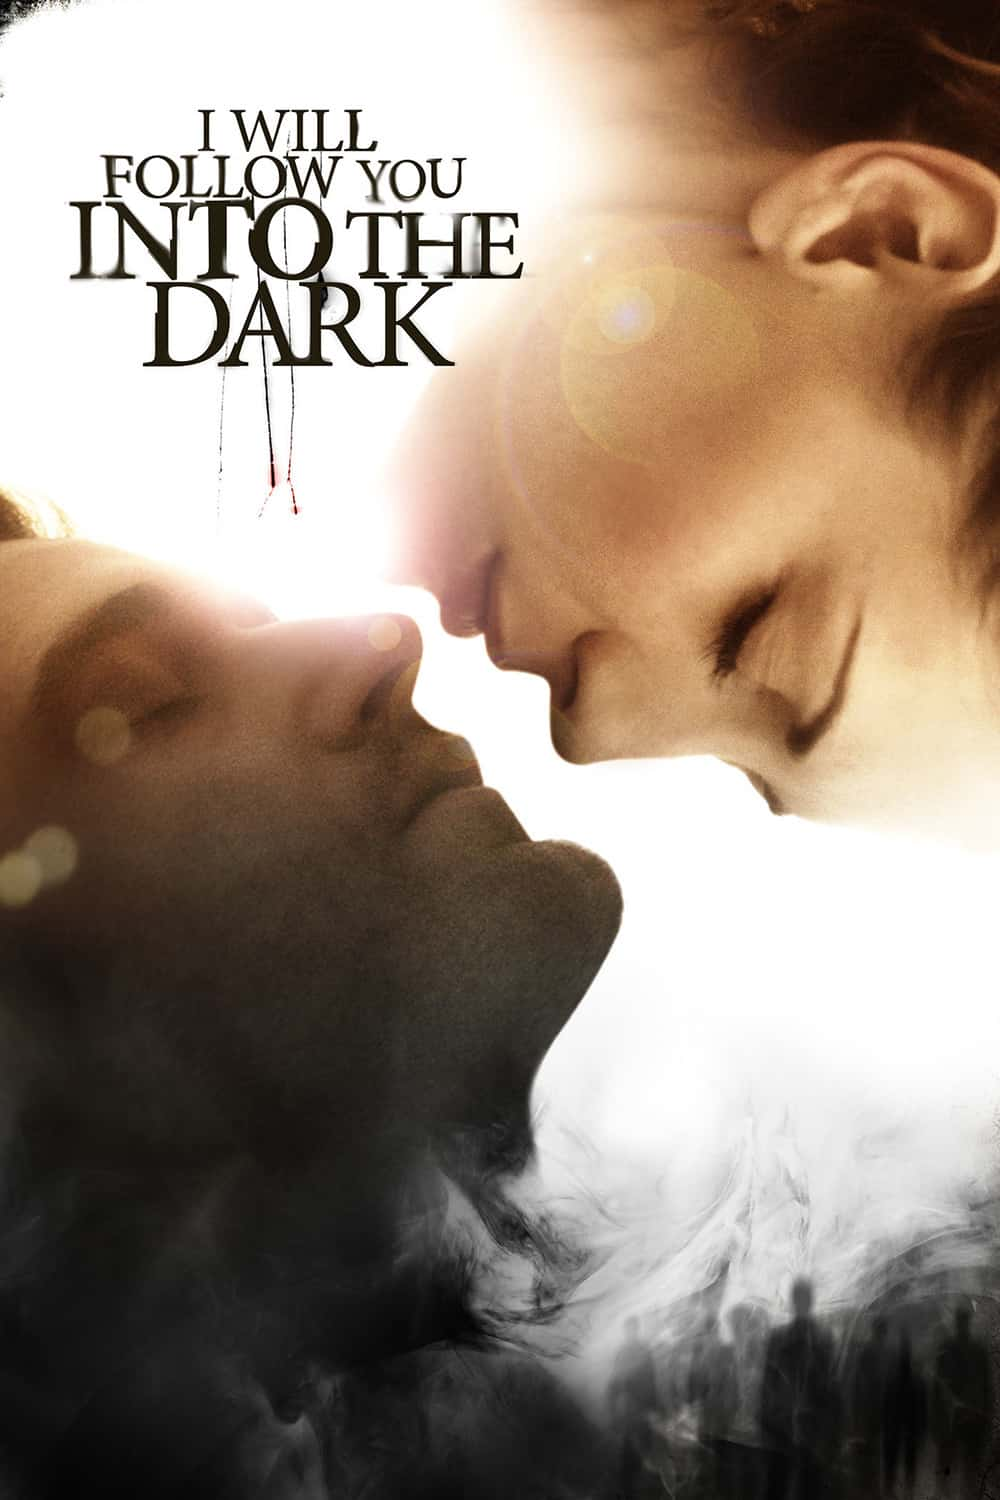 Into the Dark, 2012